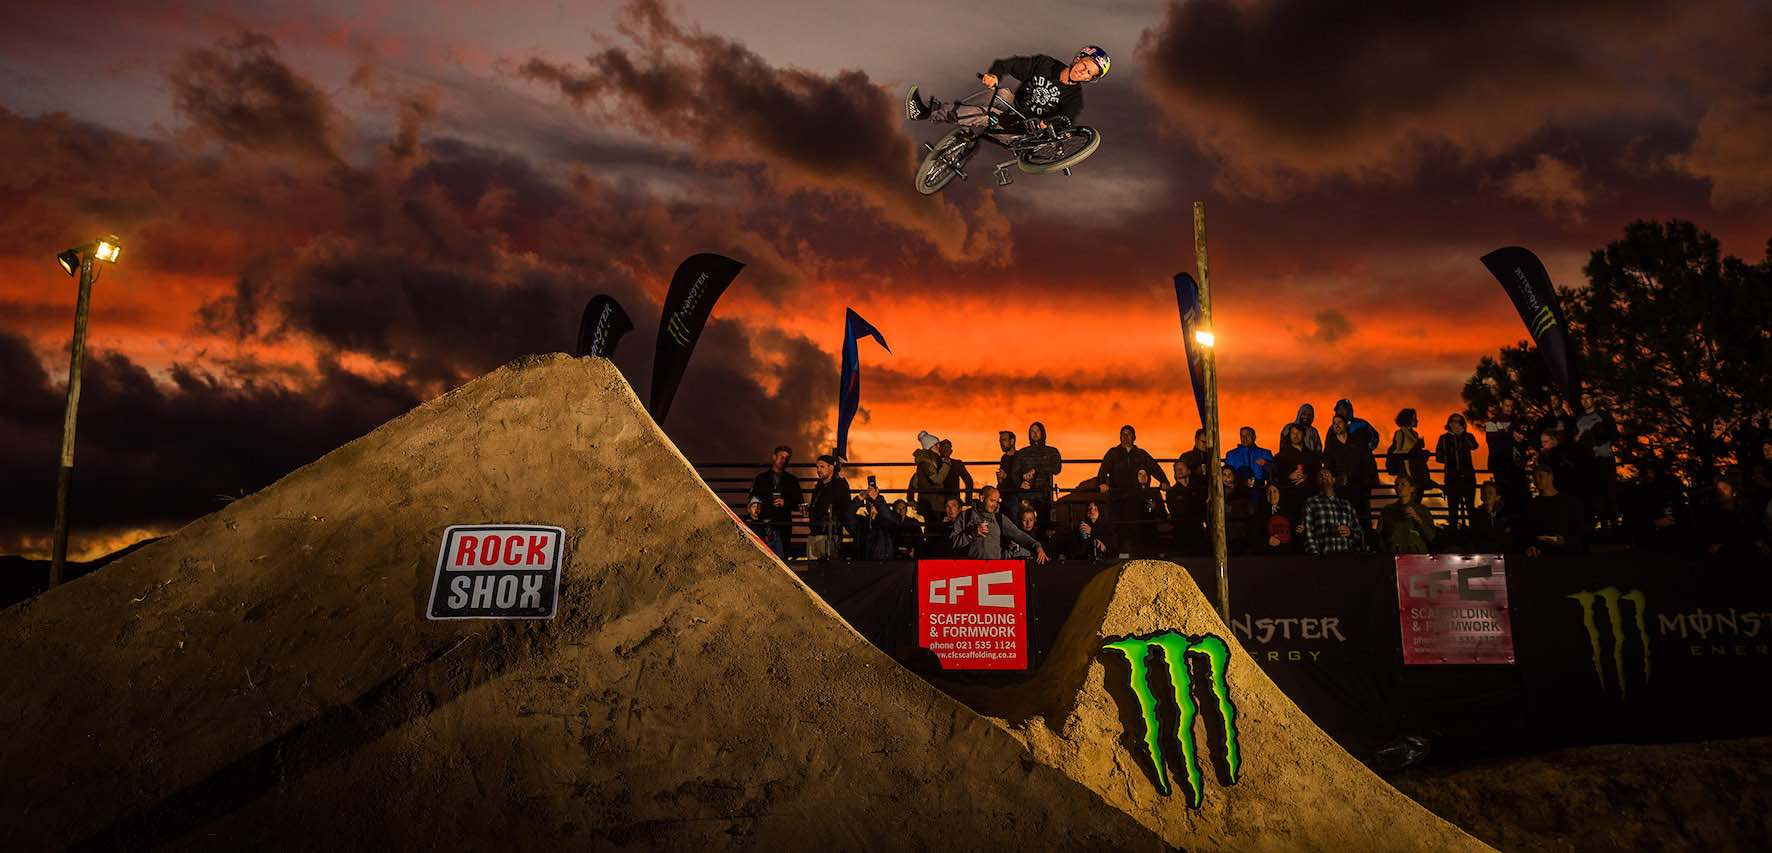 Murray Loubser representing the BMX division at The Night Harvest 2019